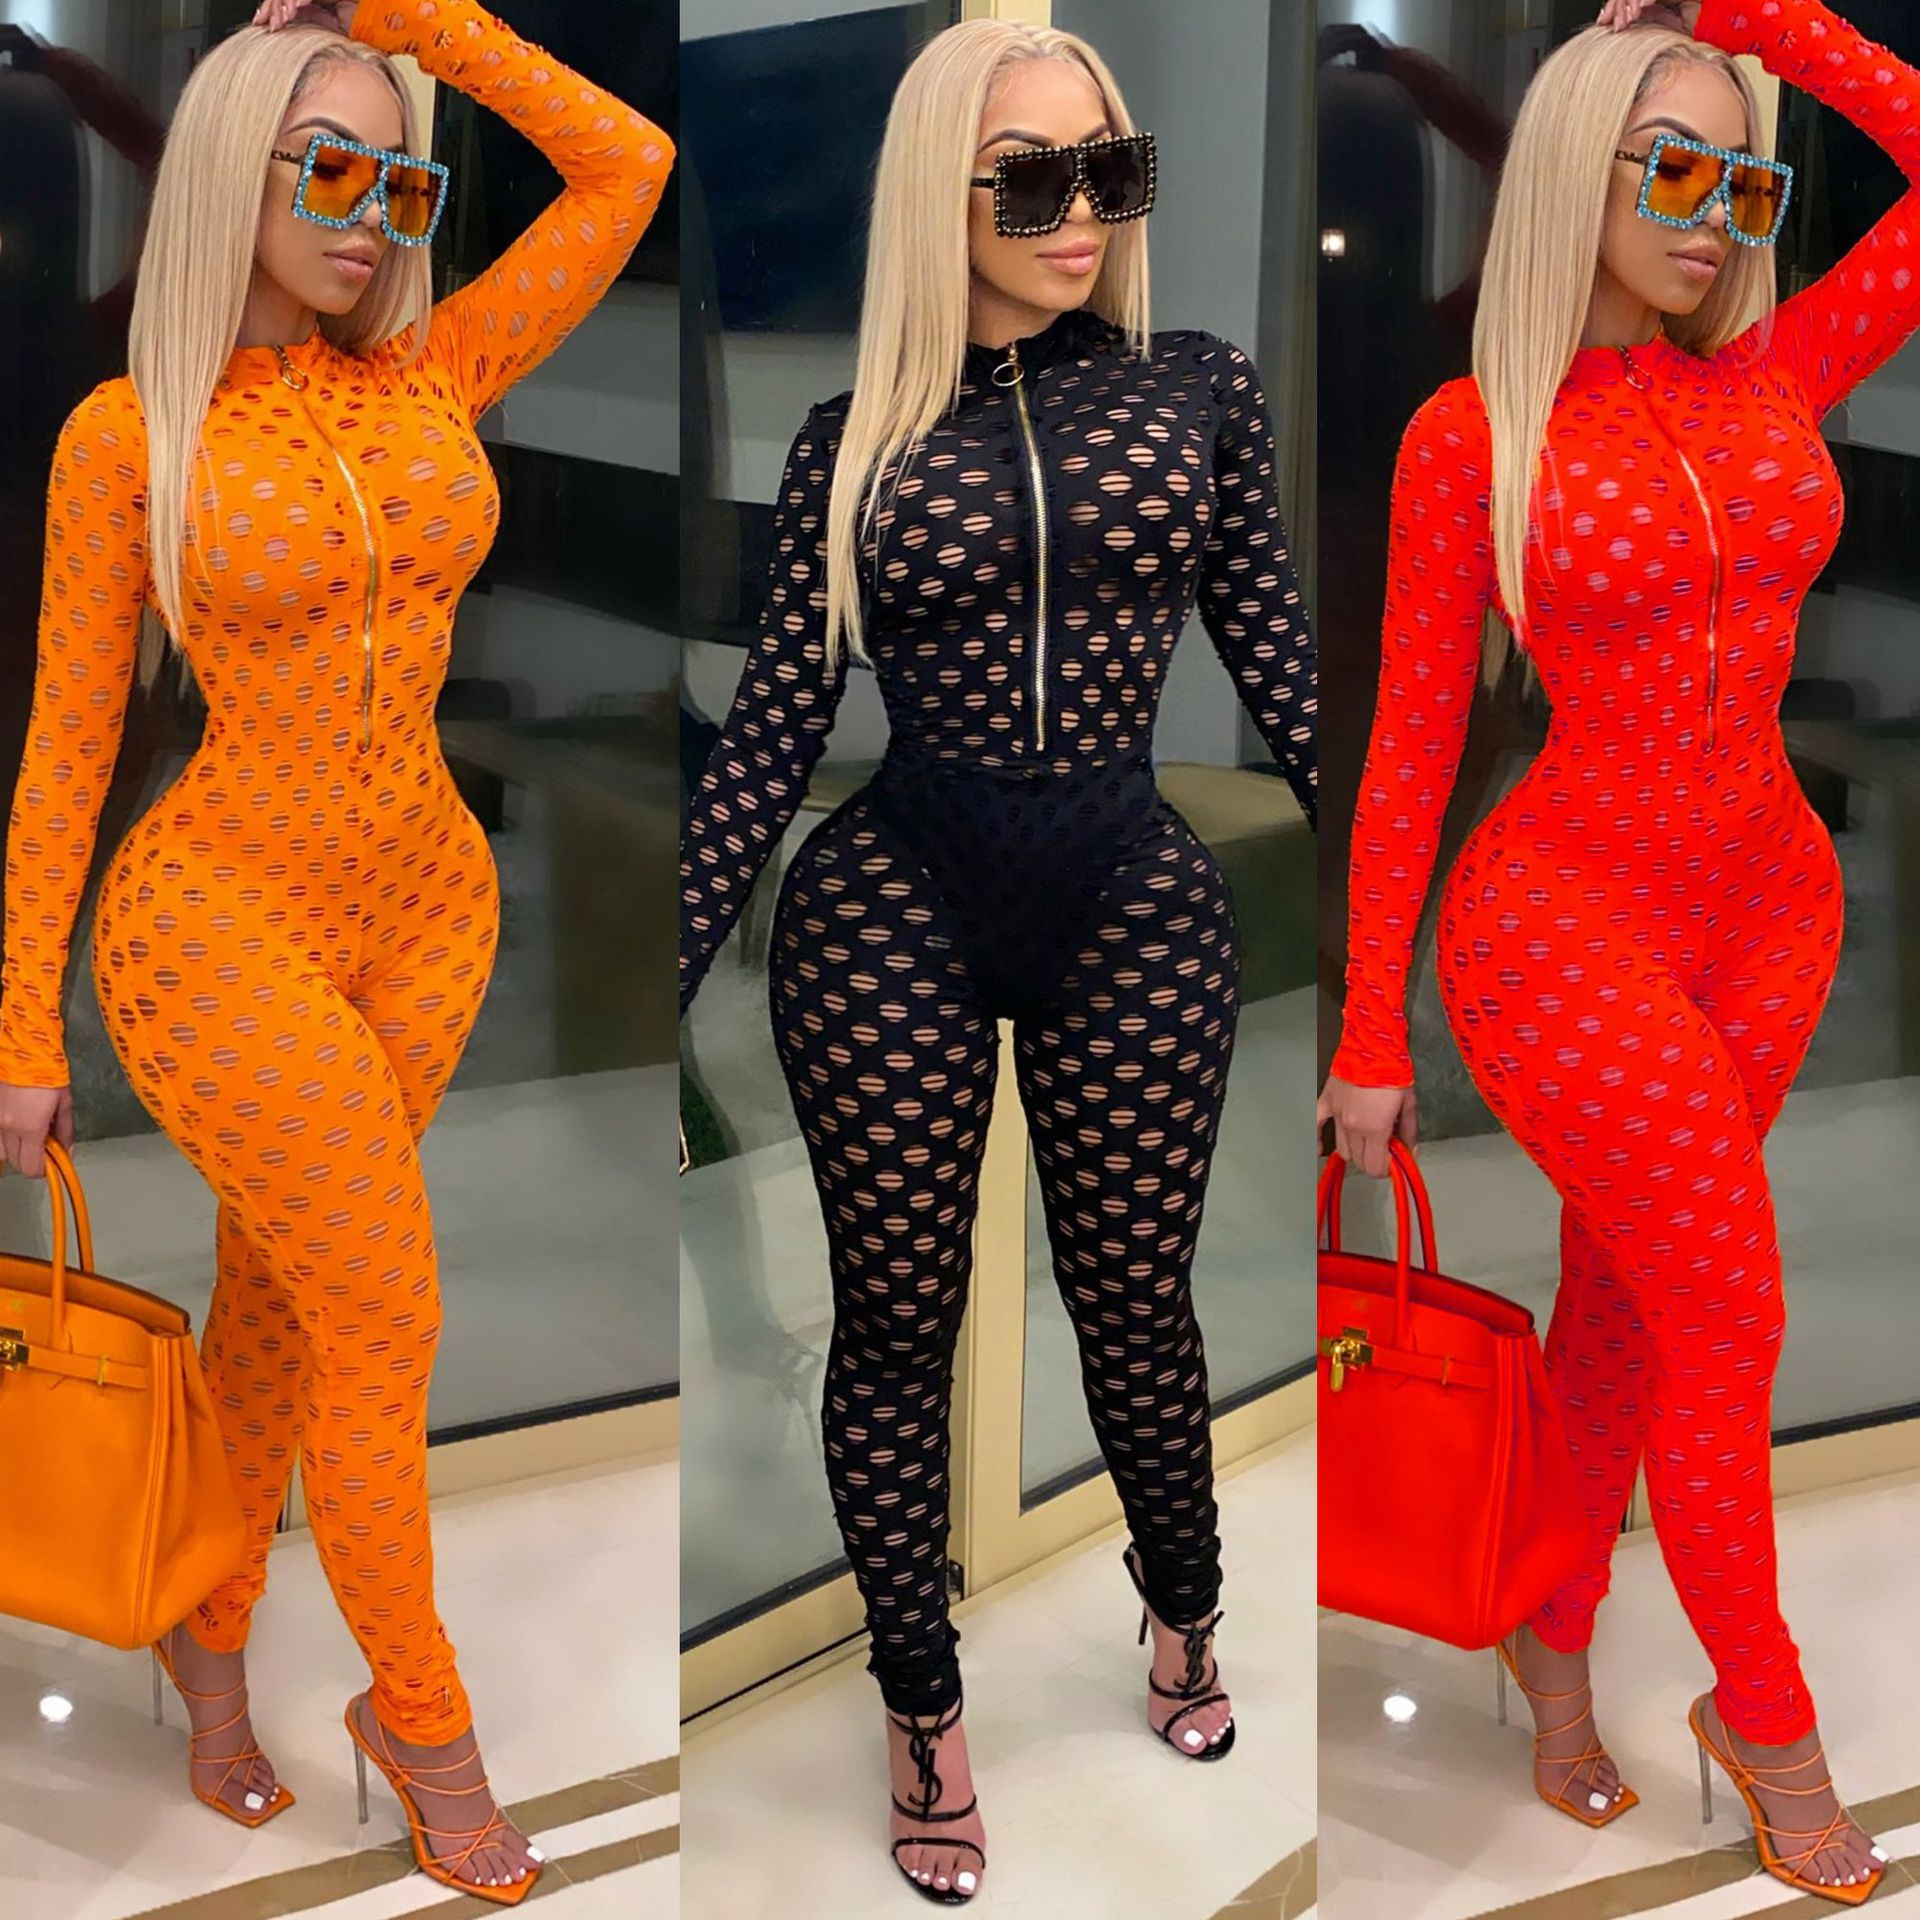 Sexy See Through Hollow Out Fishnet Playsuit Women Fitness Bodycon Club Outfits Party Streetwear Zipper Rompers Overalls Black